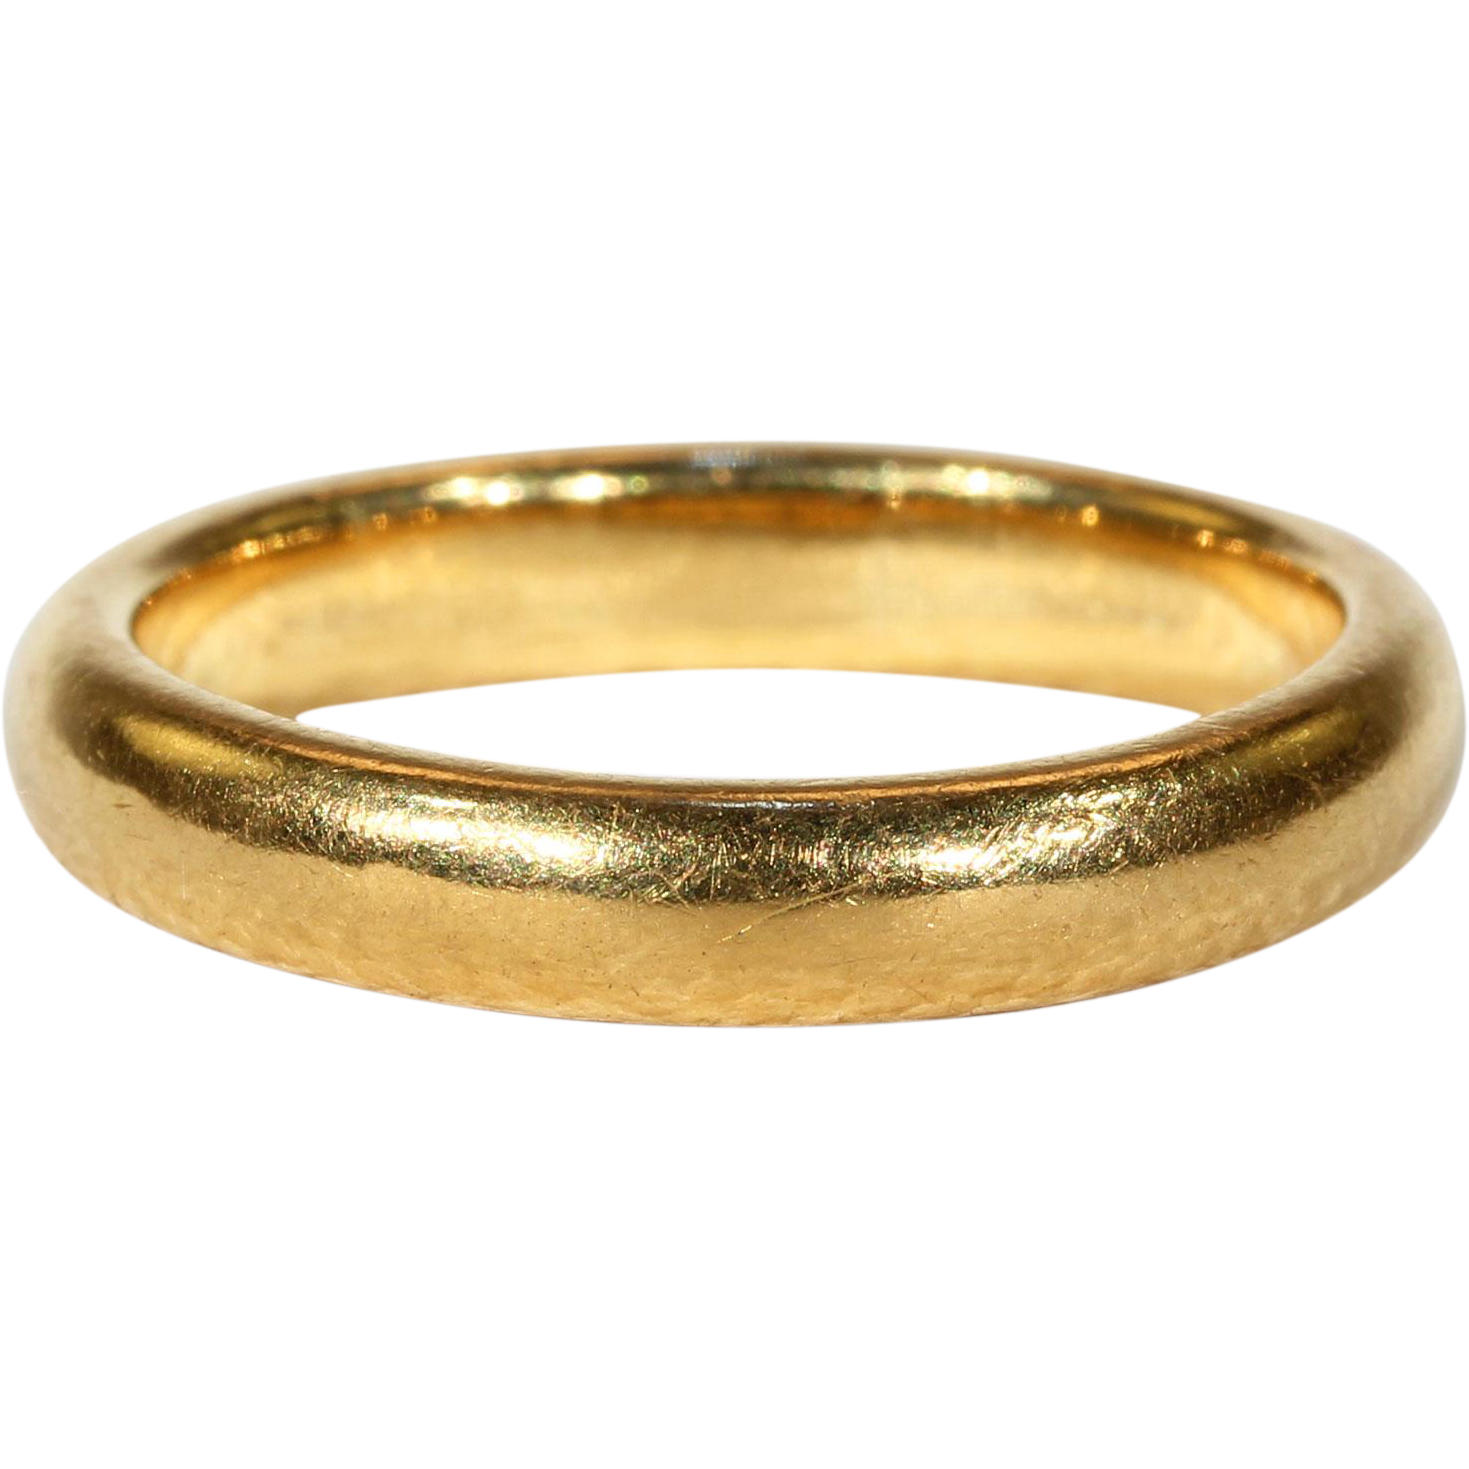 rings traditional gold filigree band searchcode